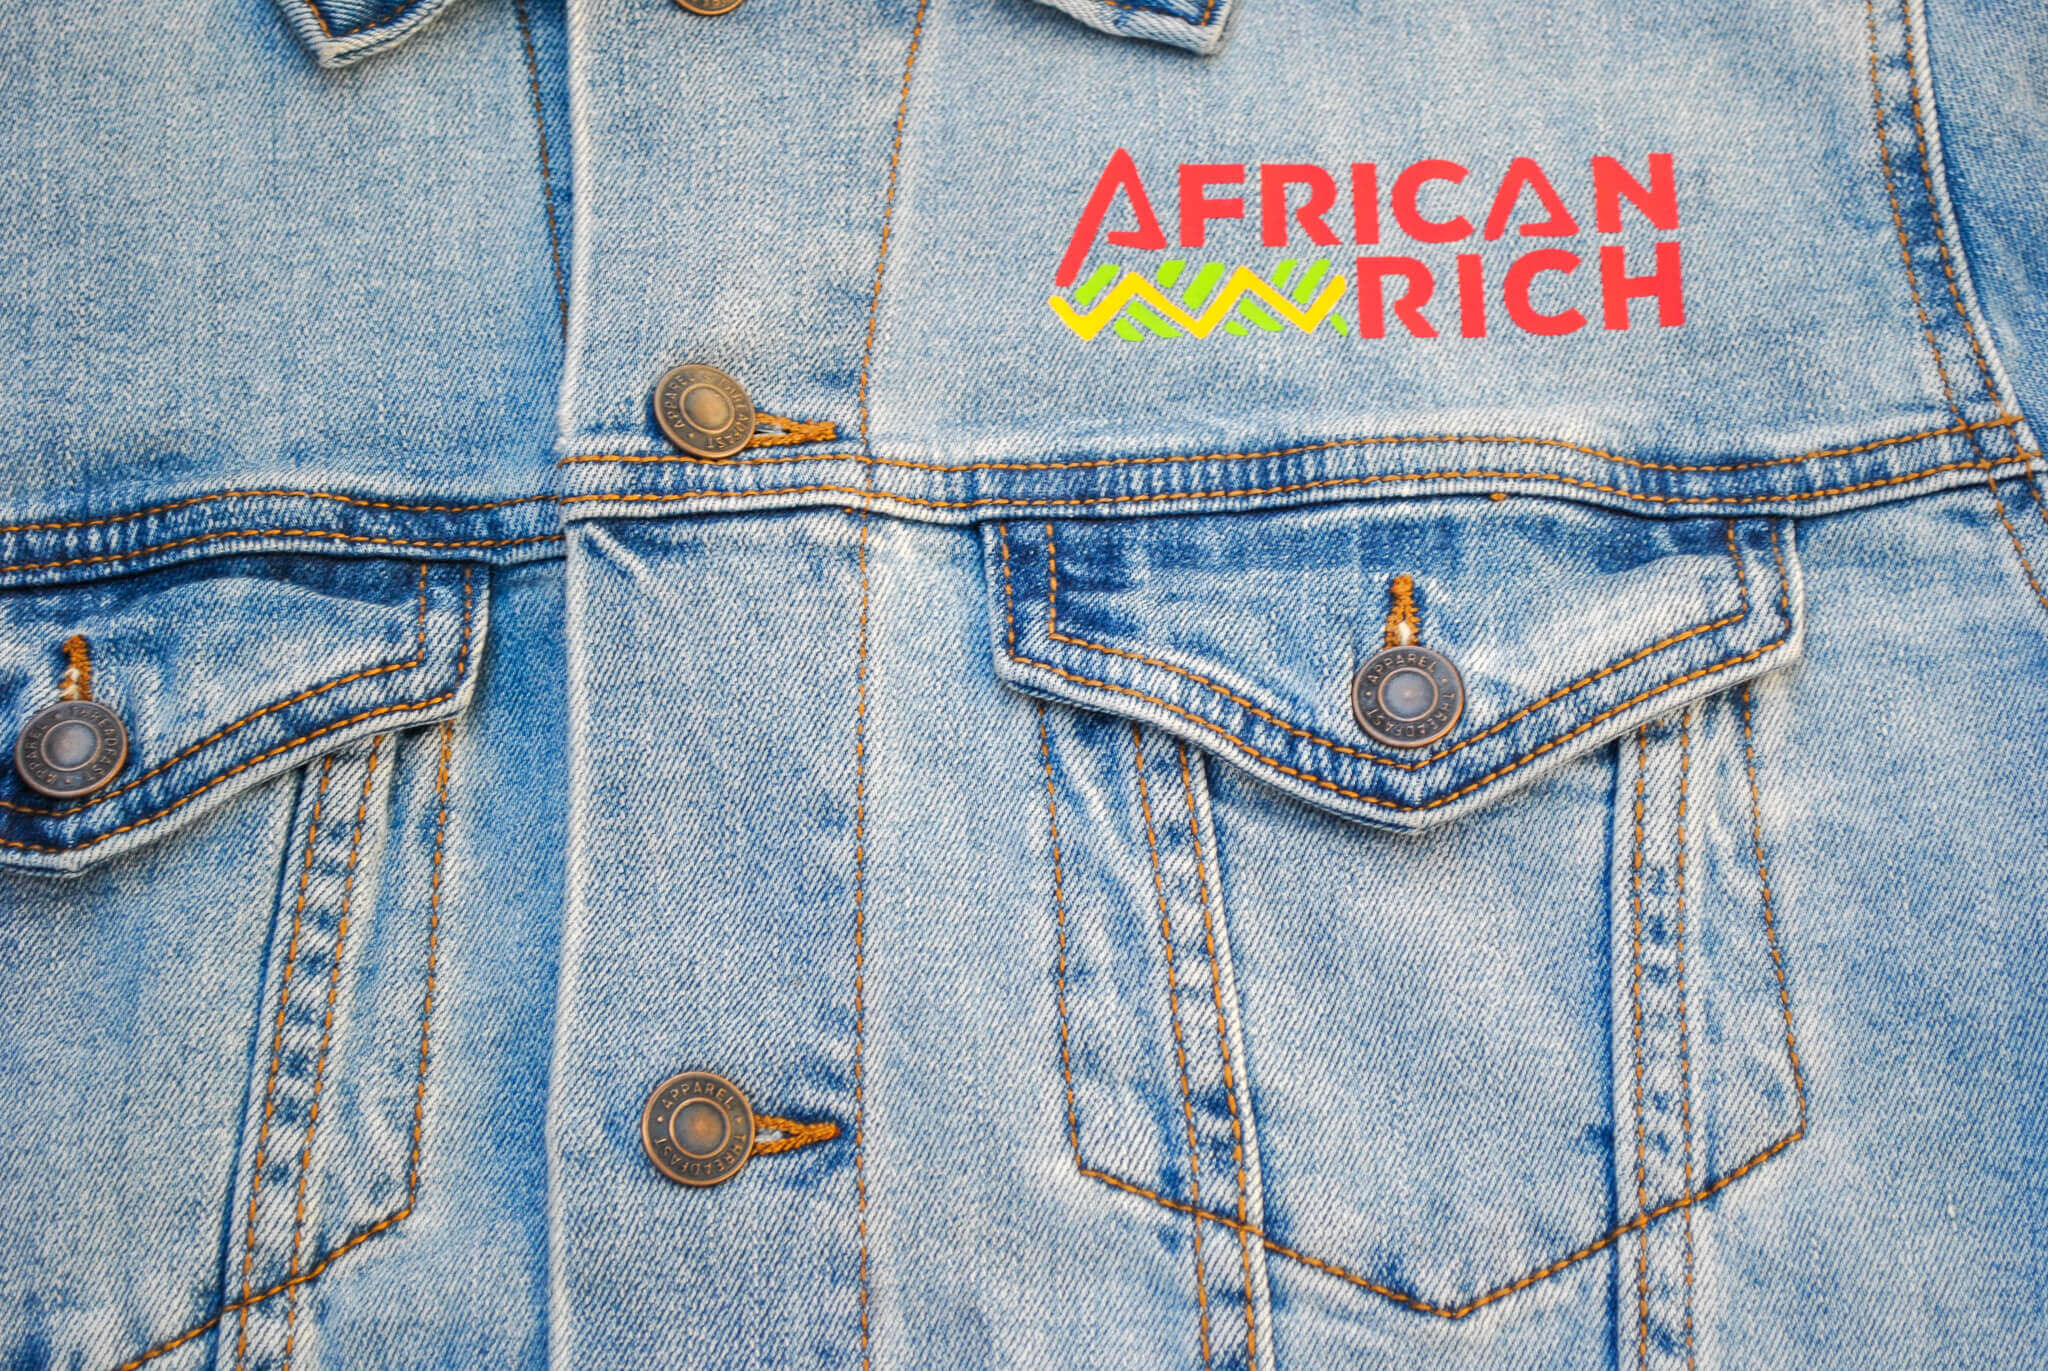 AfricanRich Signature Cotton Denim Jacket